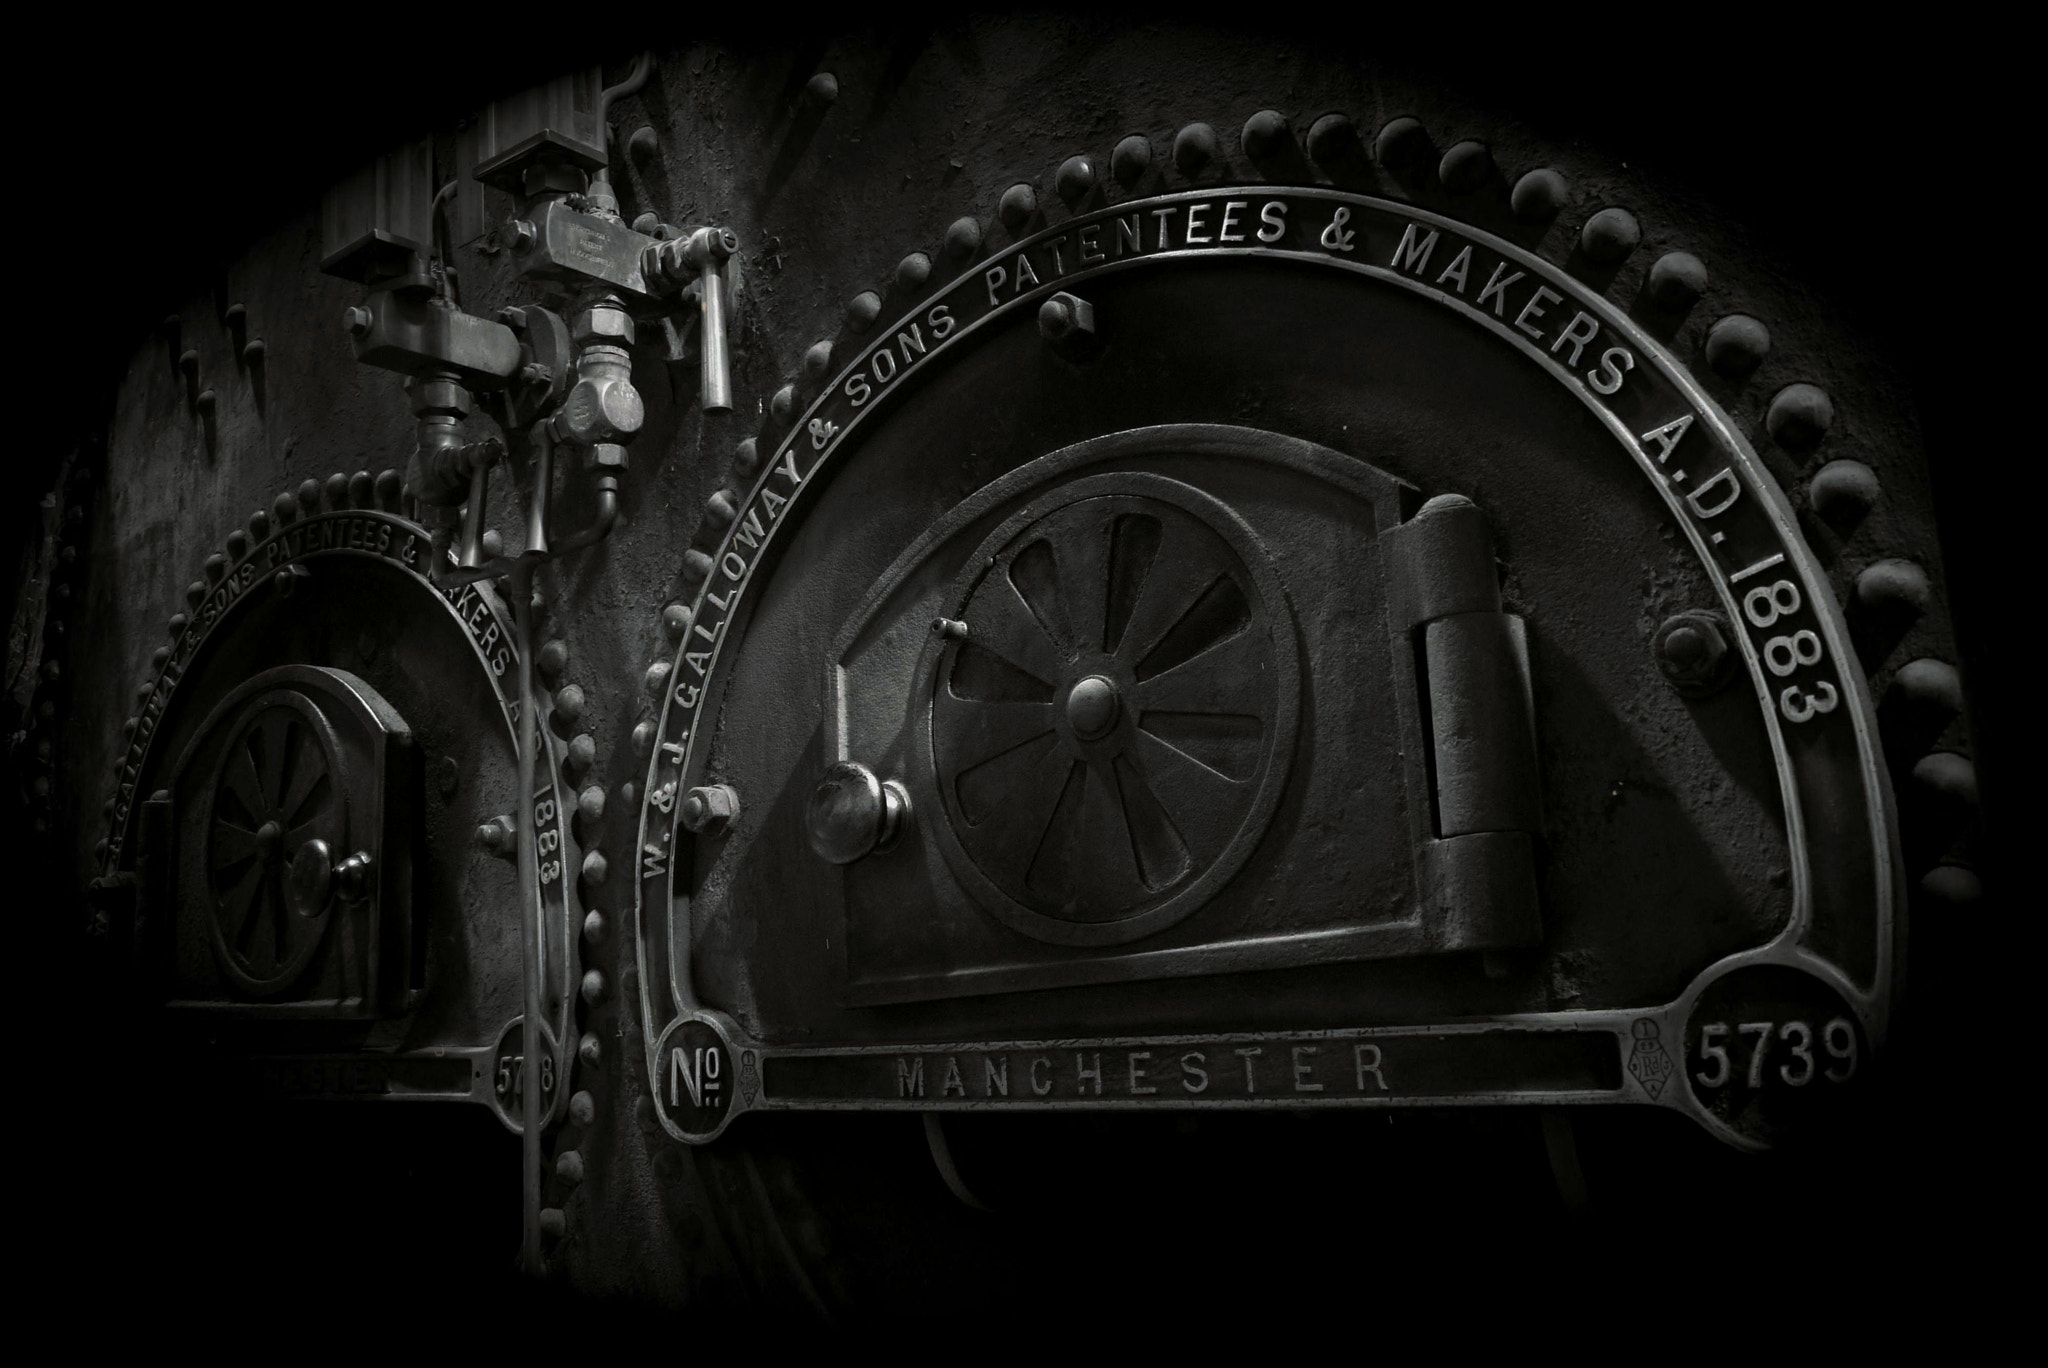 Photograph Lancashire boiler by John Flick Purchase on 500px